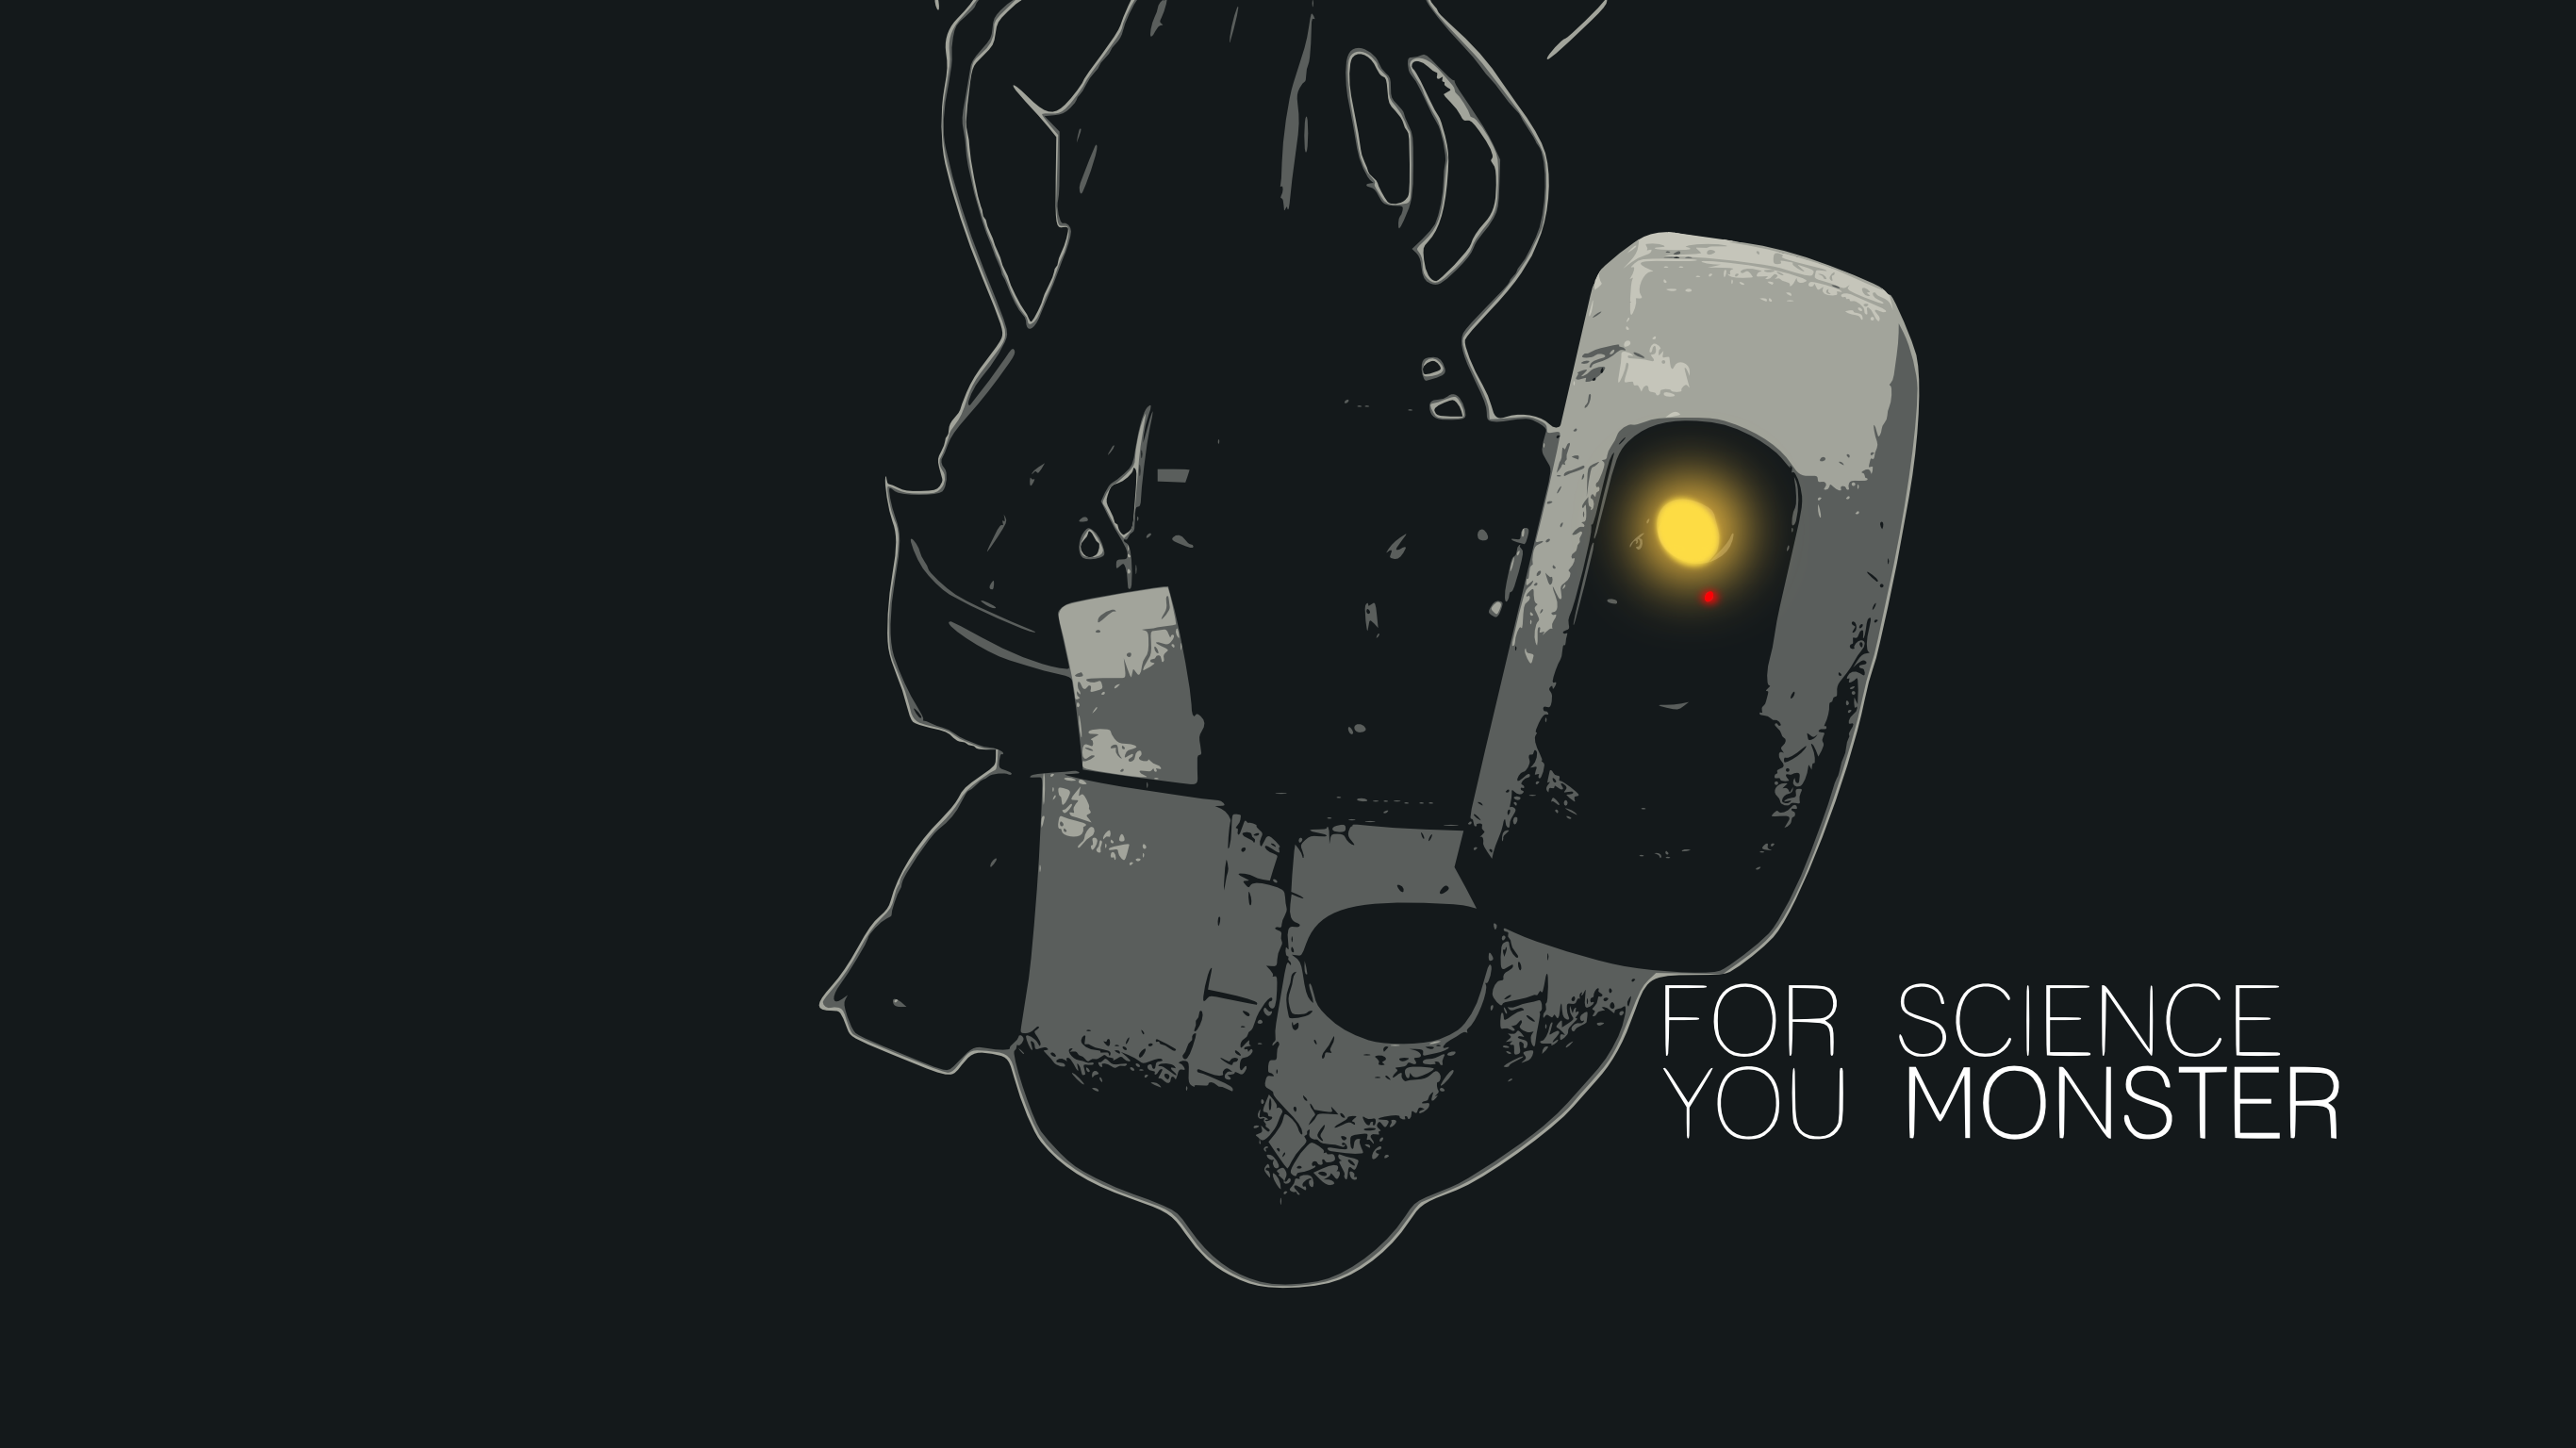 portal glados quote wallpaper